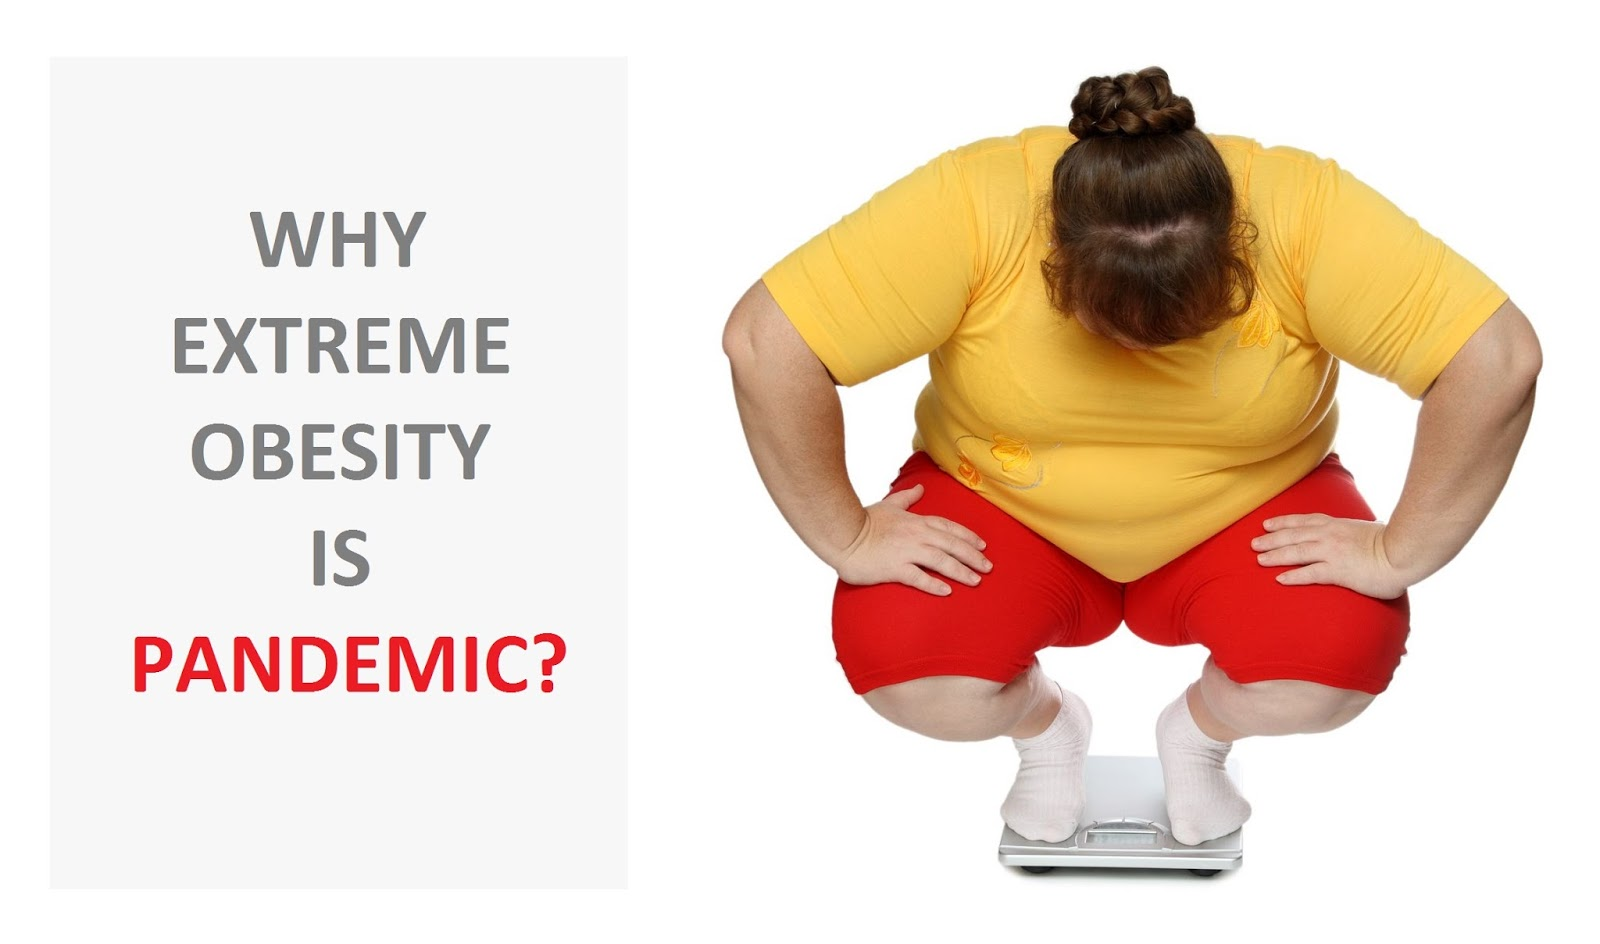 Why extreme obesity is pandemic?